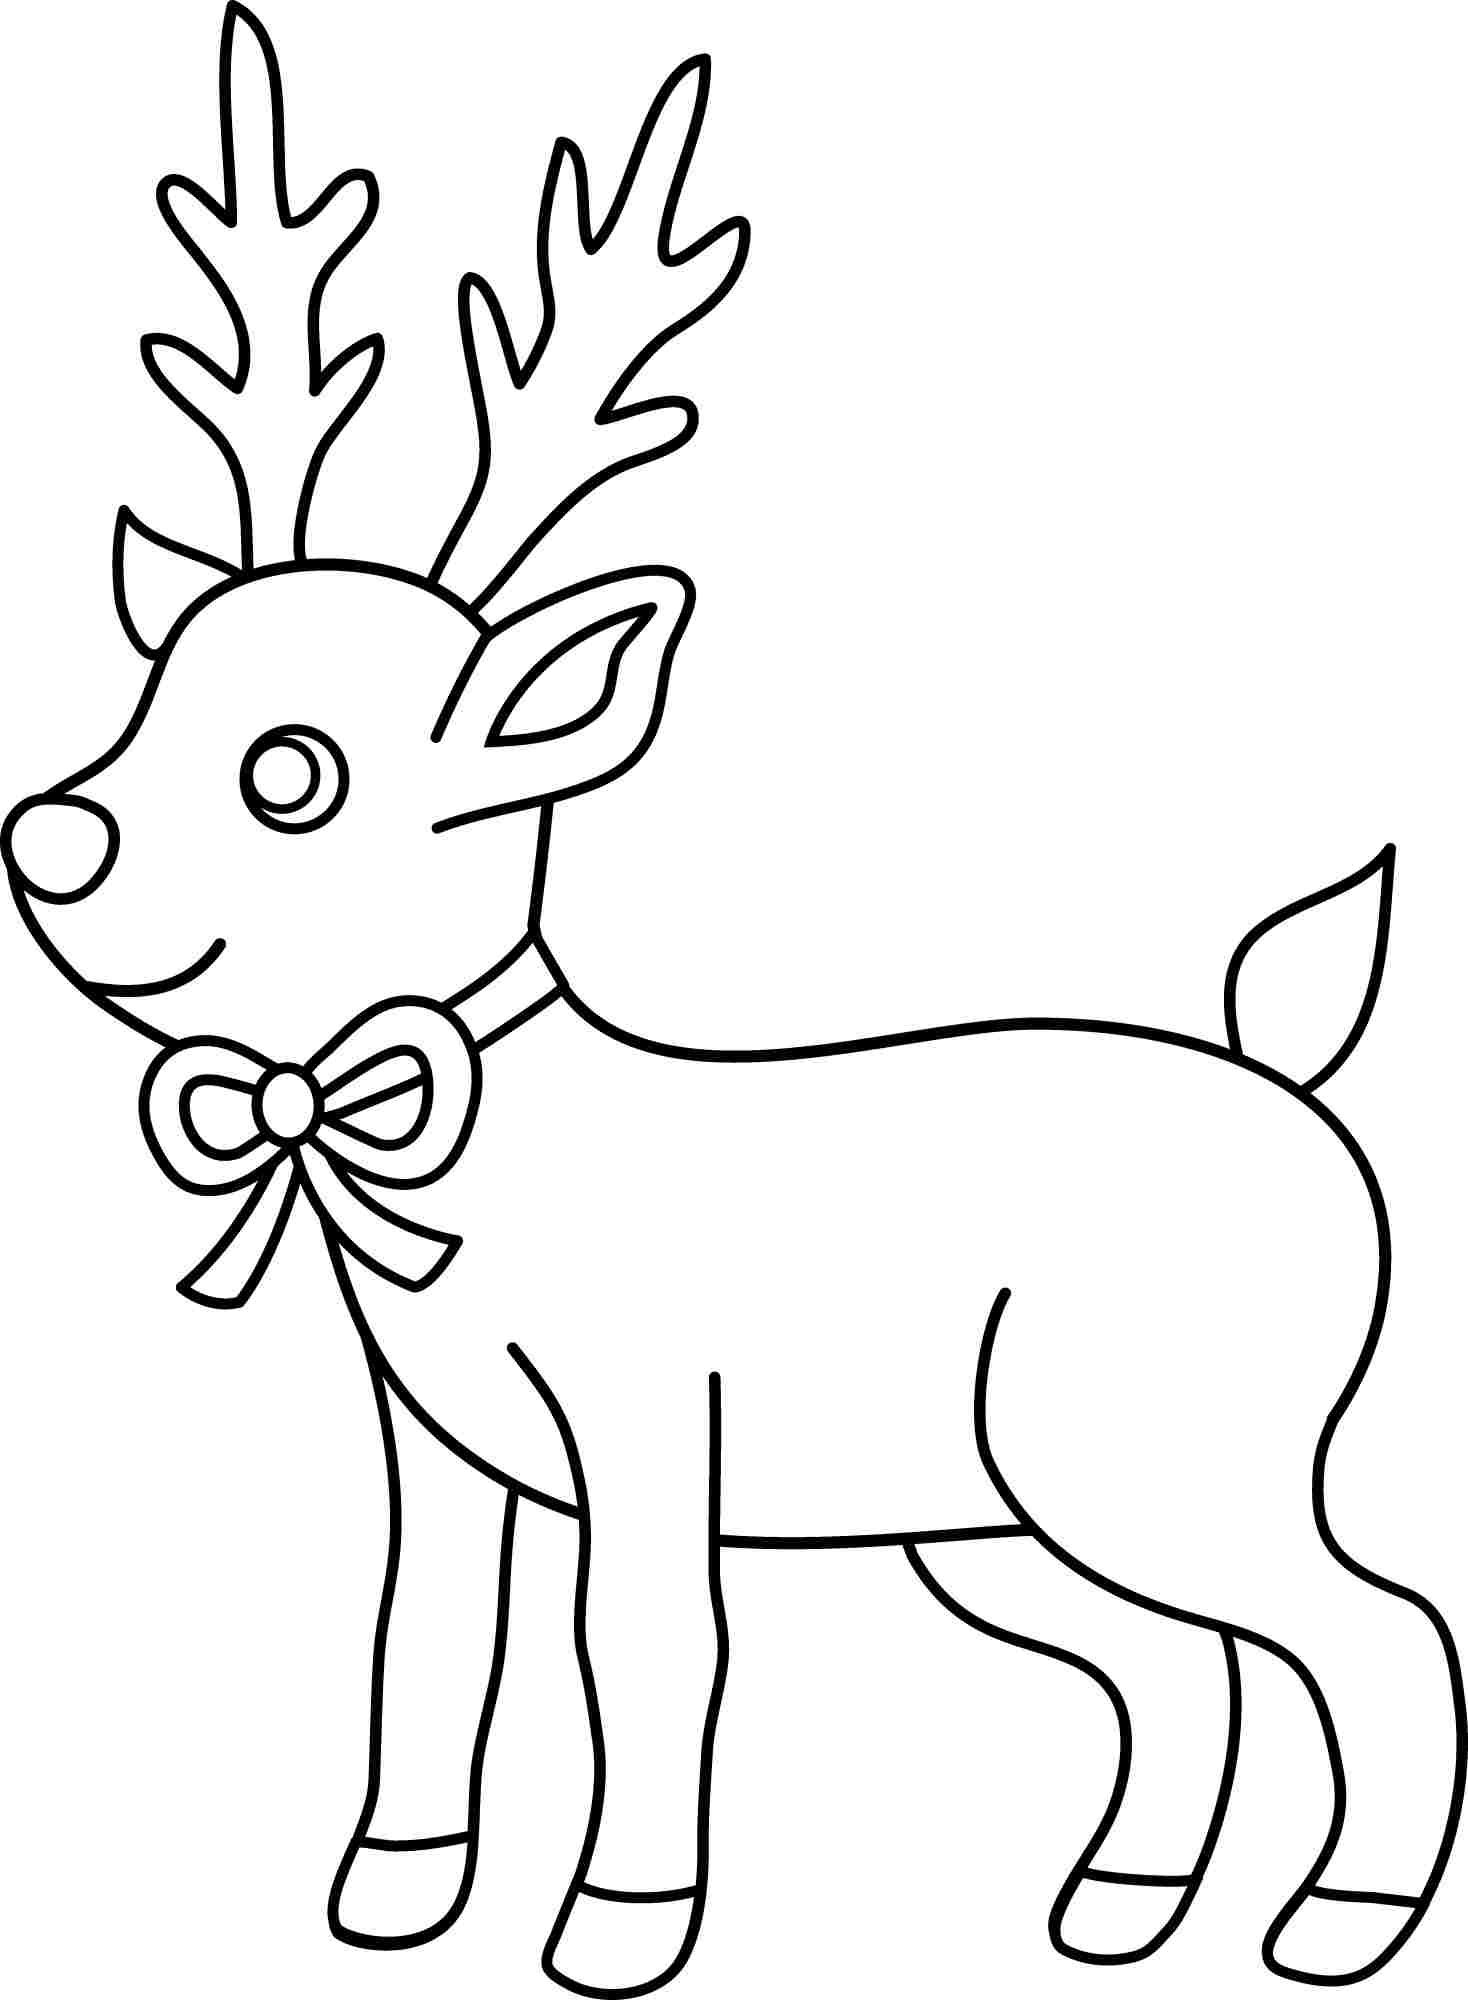 christmas coloring pages for kids has baby jesus ornaments id crafts hacks pinterest. Black Bedroom Furniture Sets. Home Design Ideas